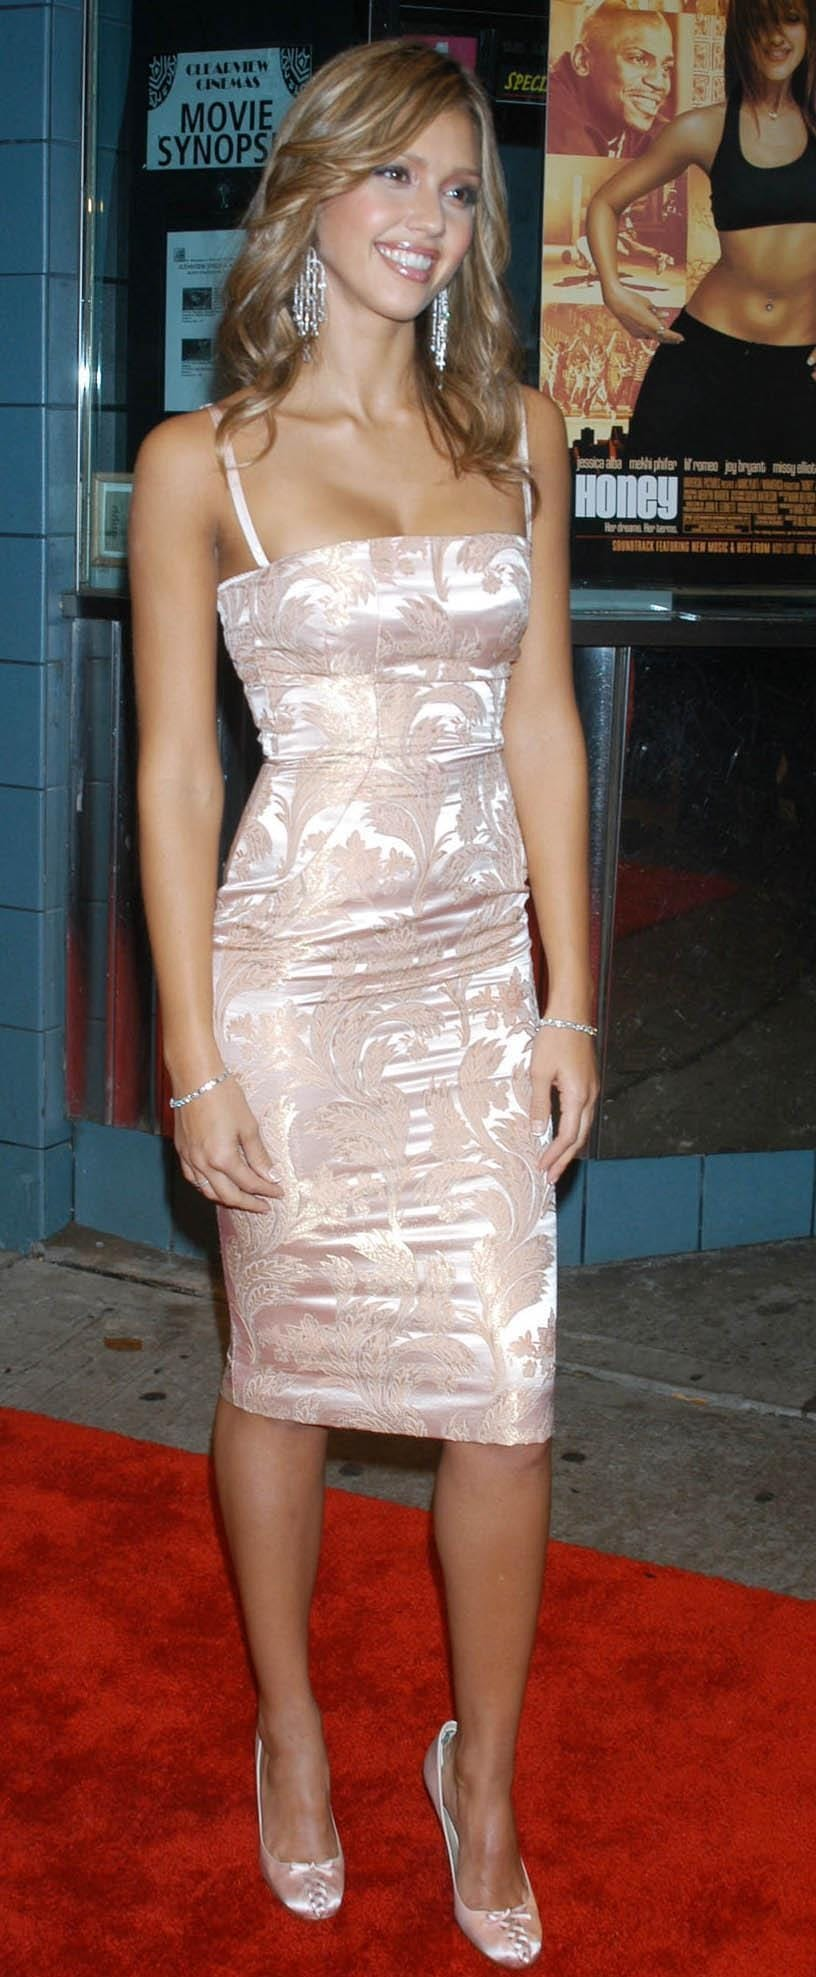 Jessica Alba at the premiere of Honey held at the Chelsea West Theater in New York City